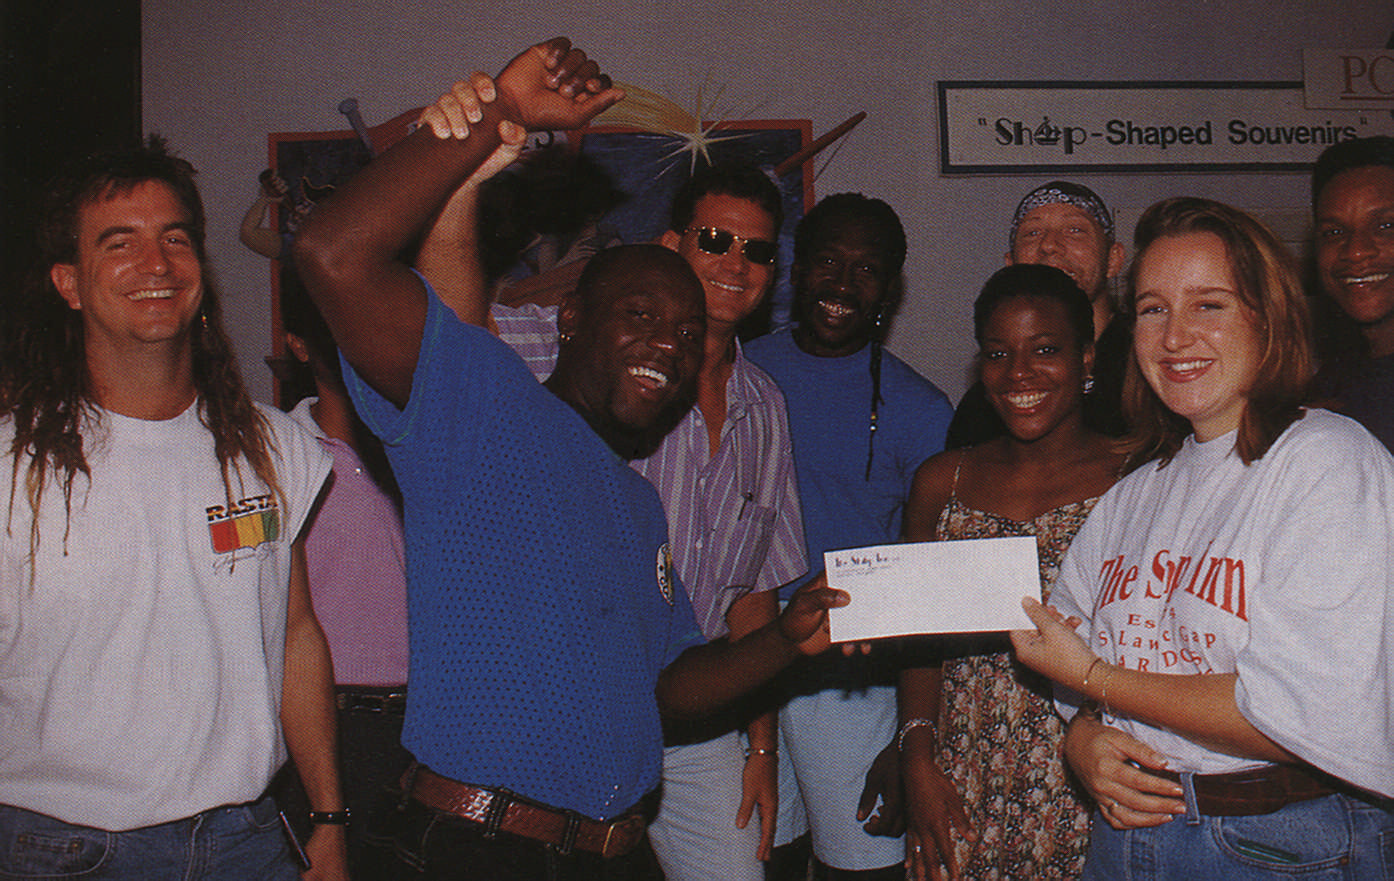 Co-sponsoring a young amateur sport team with the popular night club, Ship Inn. Photograph by Roxan Kinas